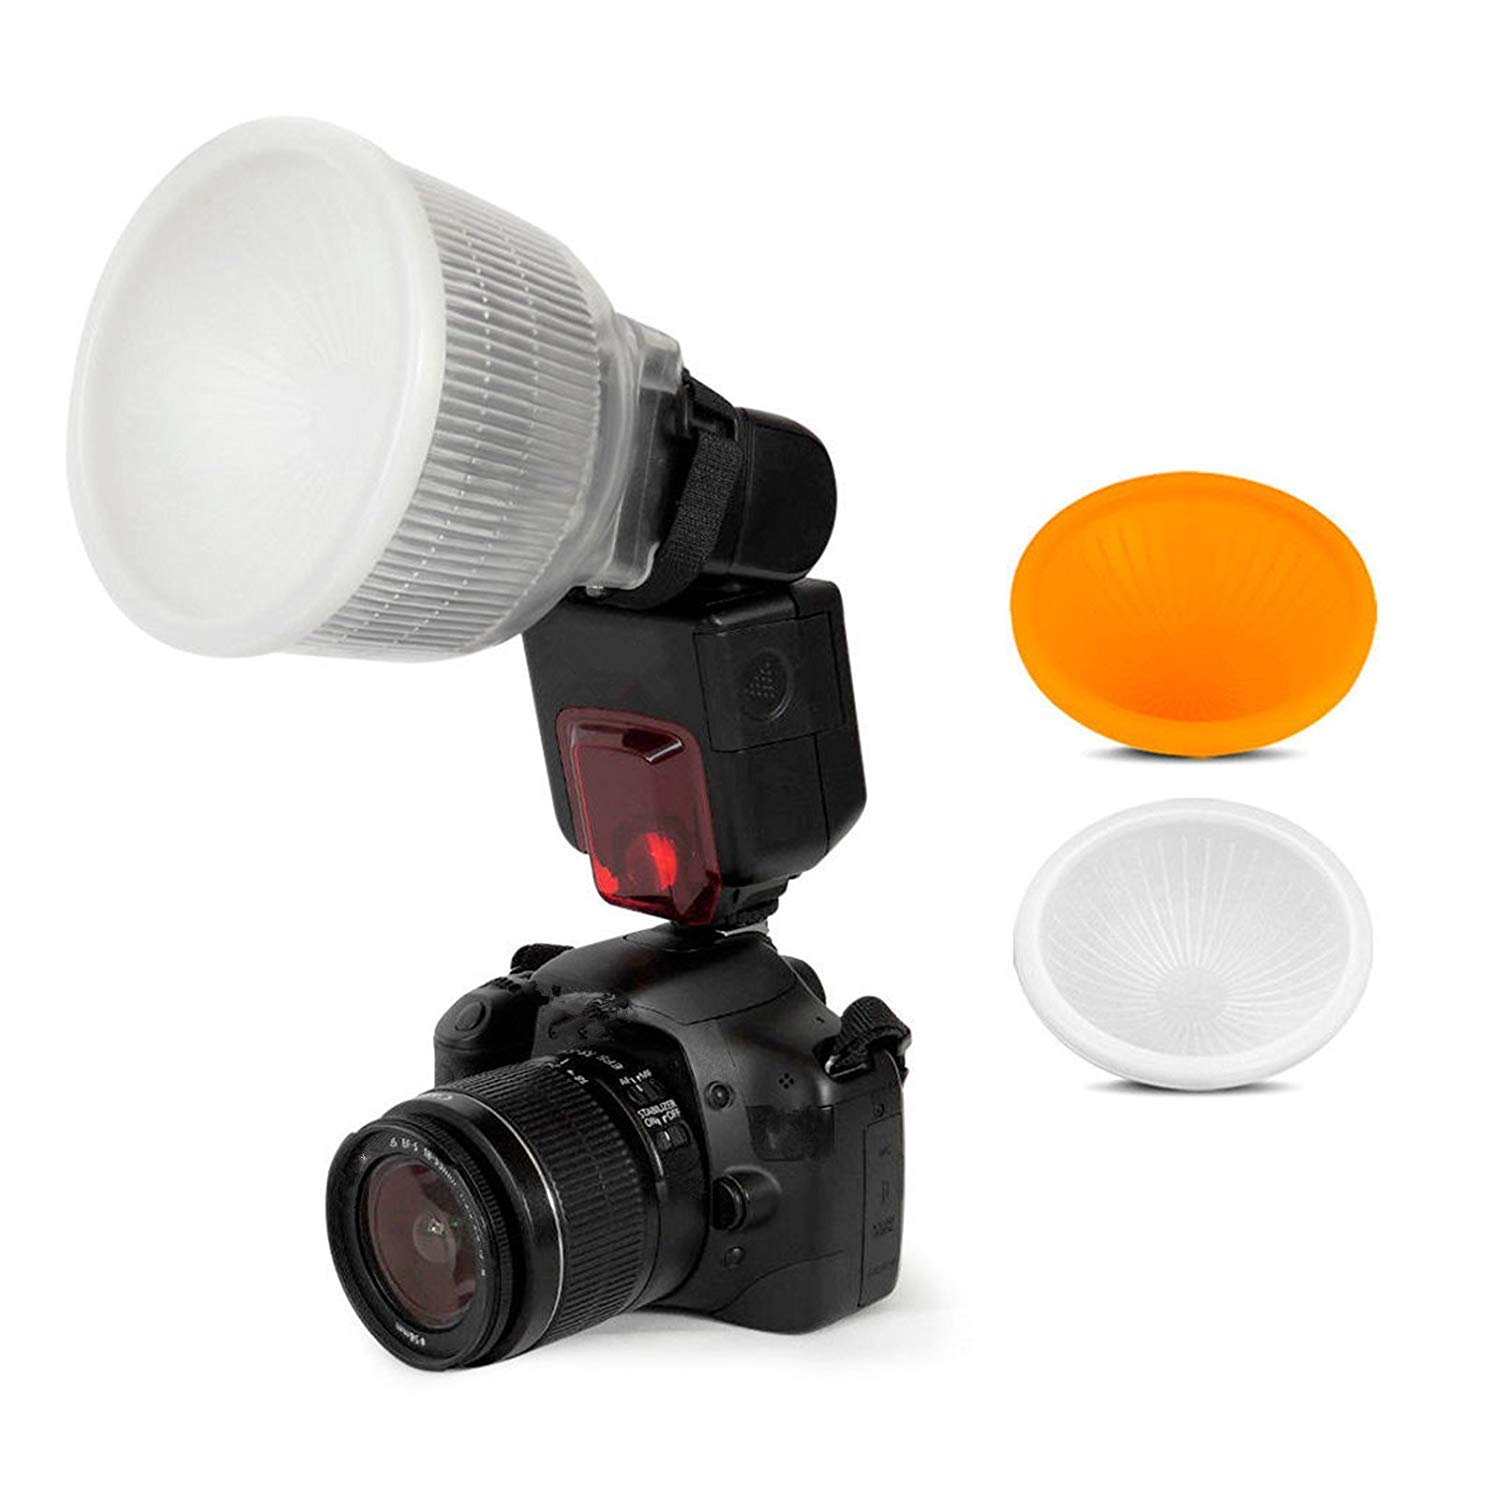 SHOOT Lambancy Dome Flash Diffuser for Canon 420EX 430EX 550EX 580EX 580EX II 600EX Nikon SB600 SB700 SB800 SB900 SB910 Sony HVL-F42AM HVL-F43AM